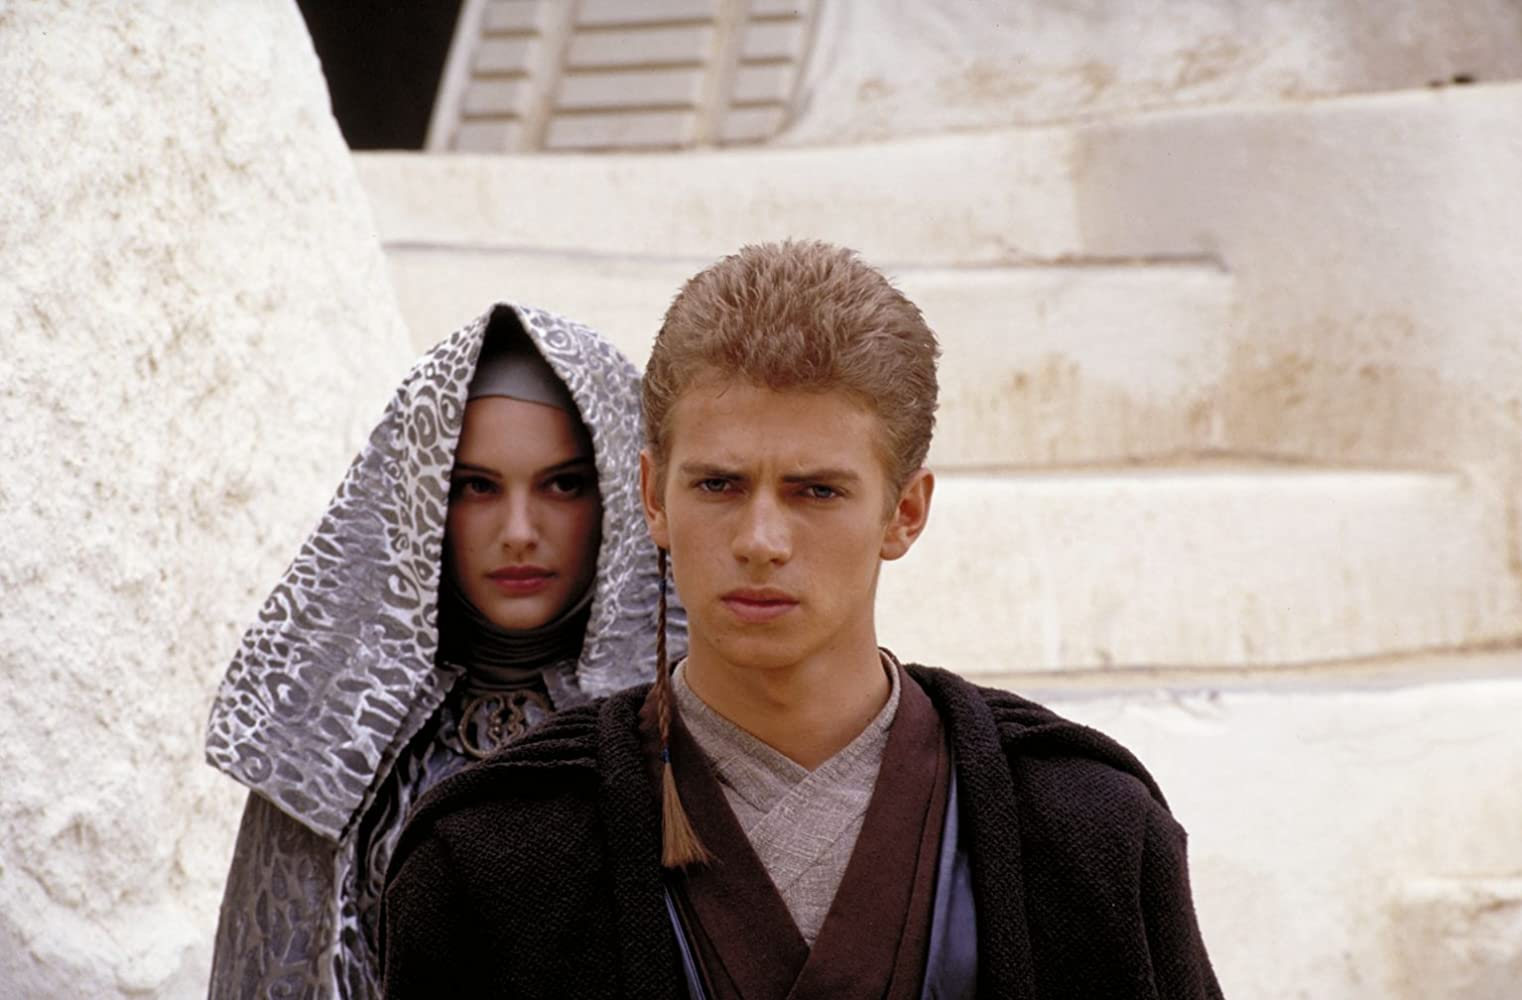 Natalie Portman and Hayden Christensen in Star Wars: Episode II - Attack of the Clones (2002)